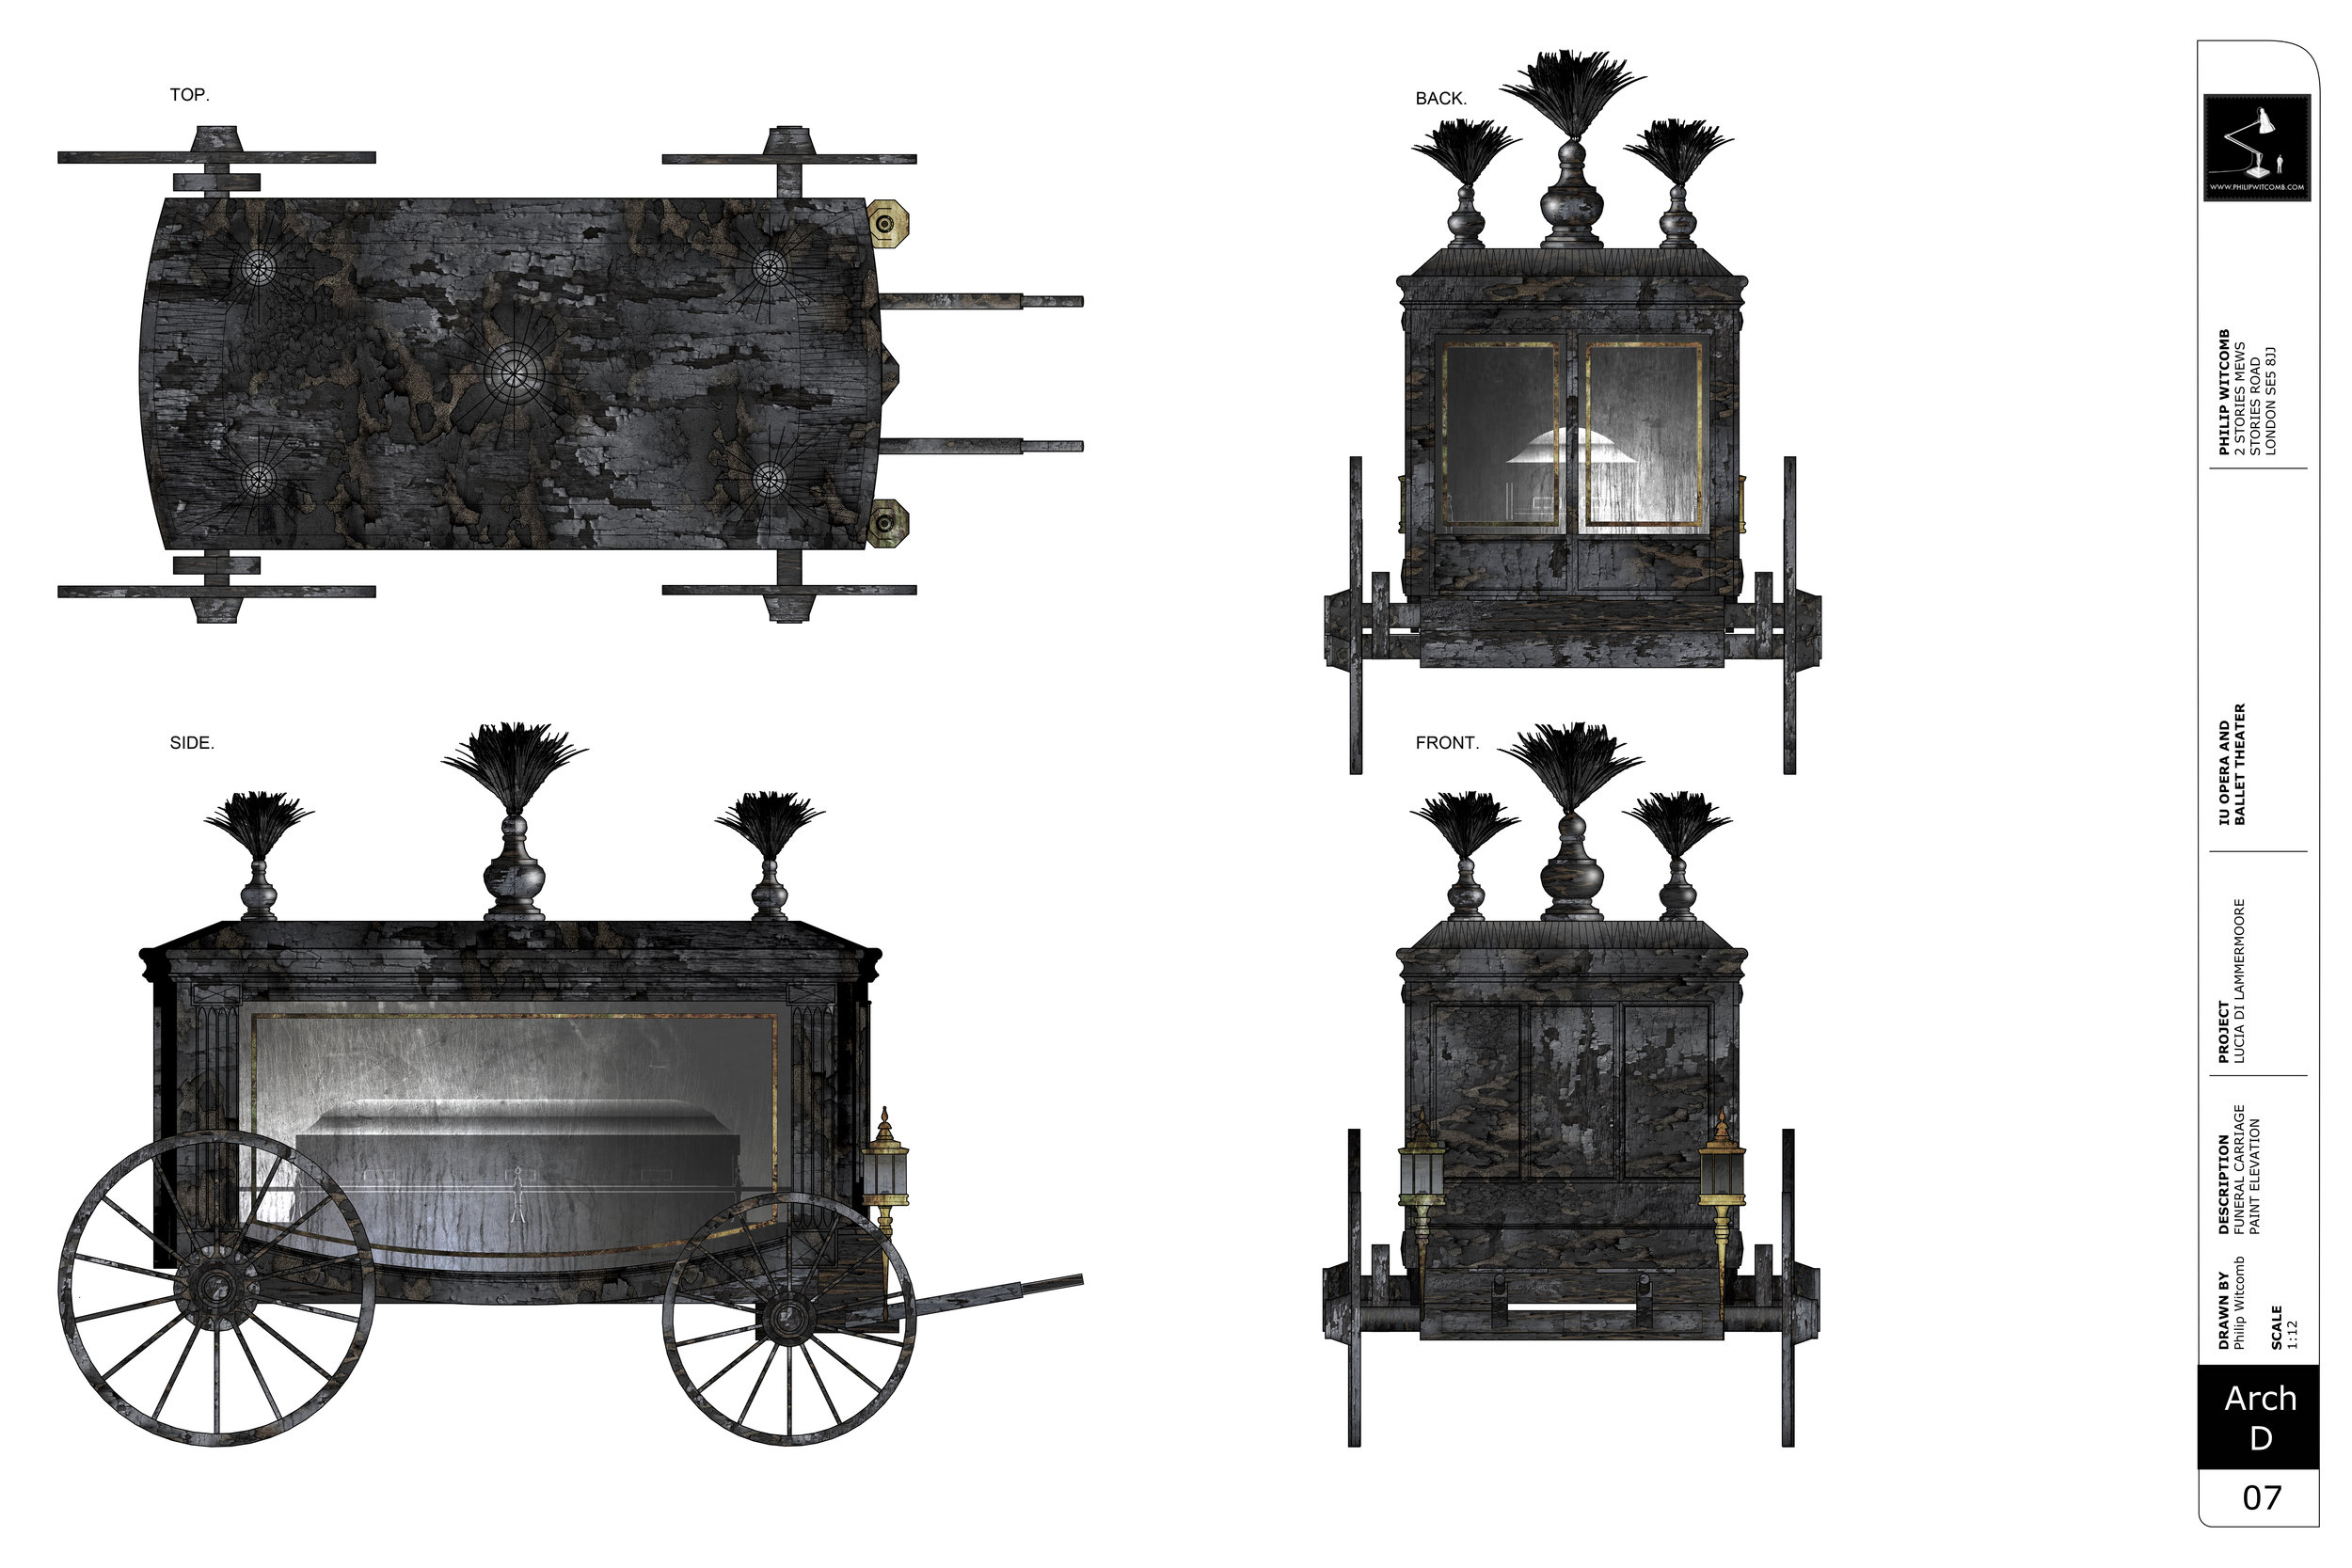 FUNERAL CARRIAGE - Paint Elevation